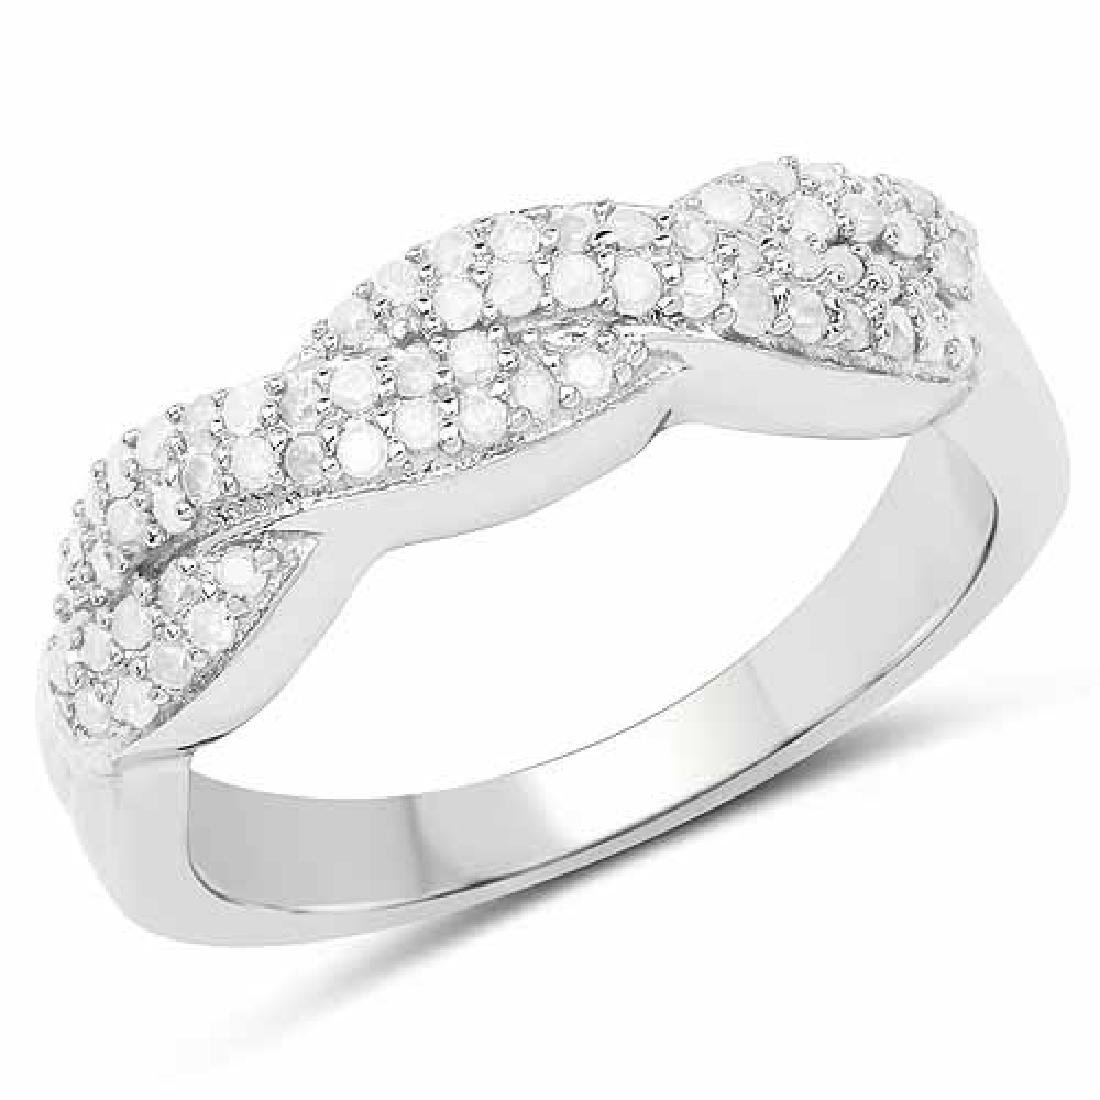 0.34 Carat Genuine White Diamond .925 Sterling Silver R